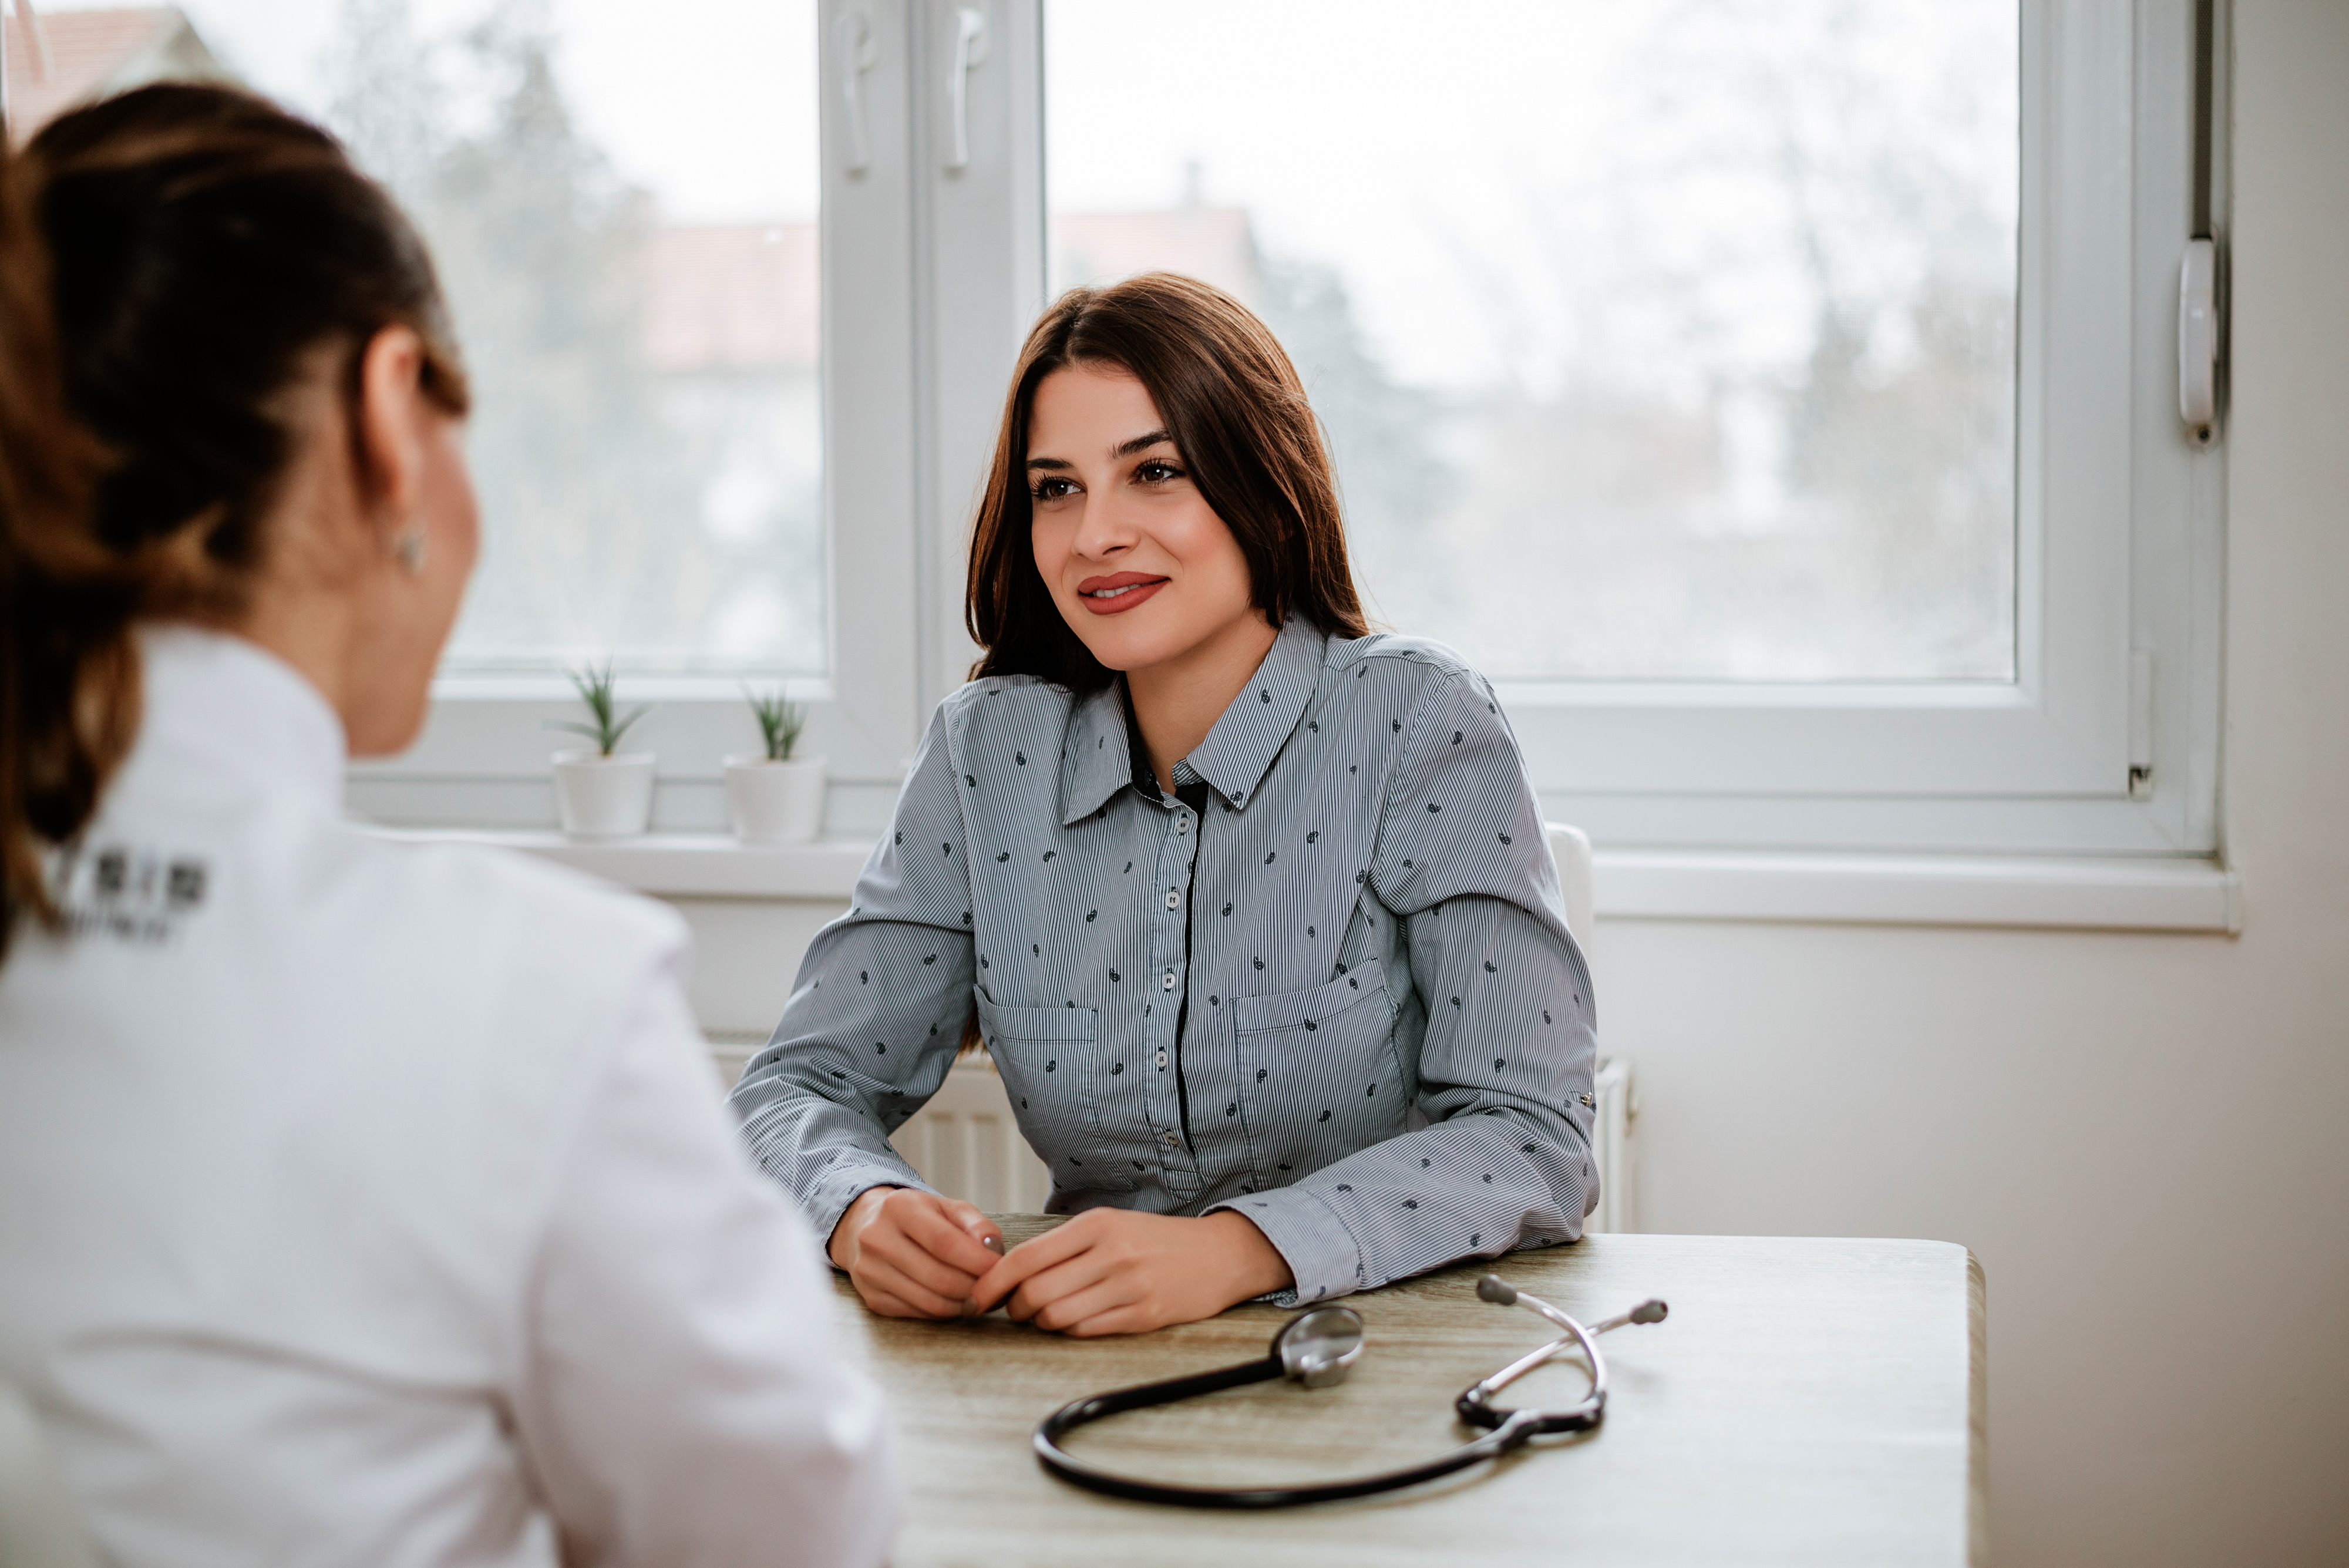 Woman consulting with a gynecologist